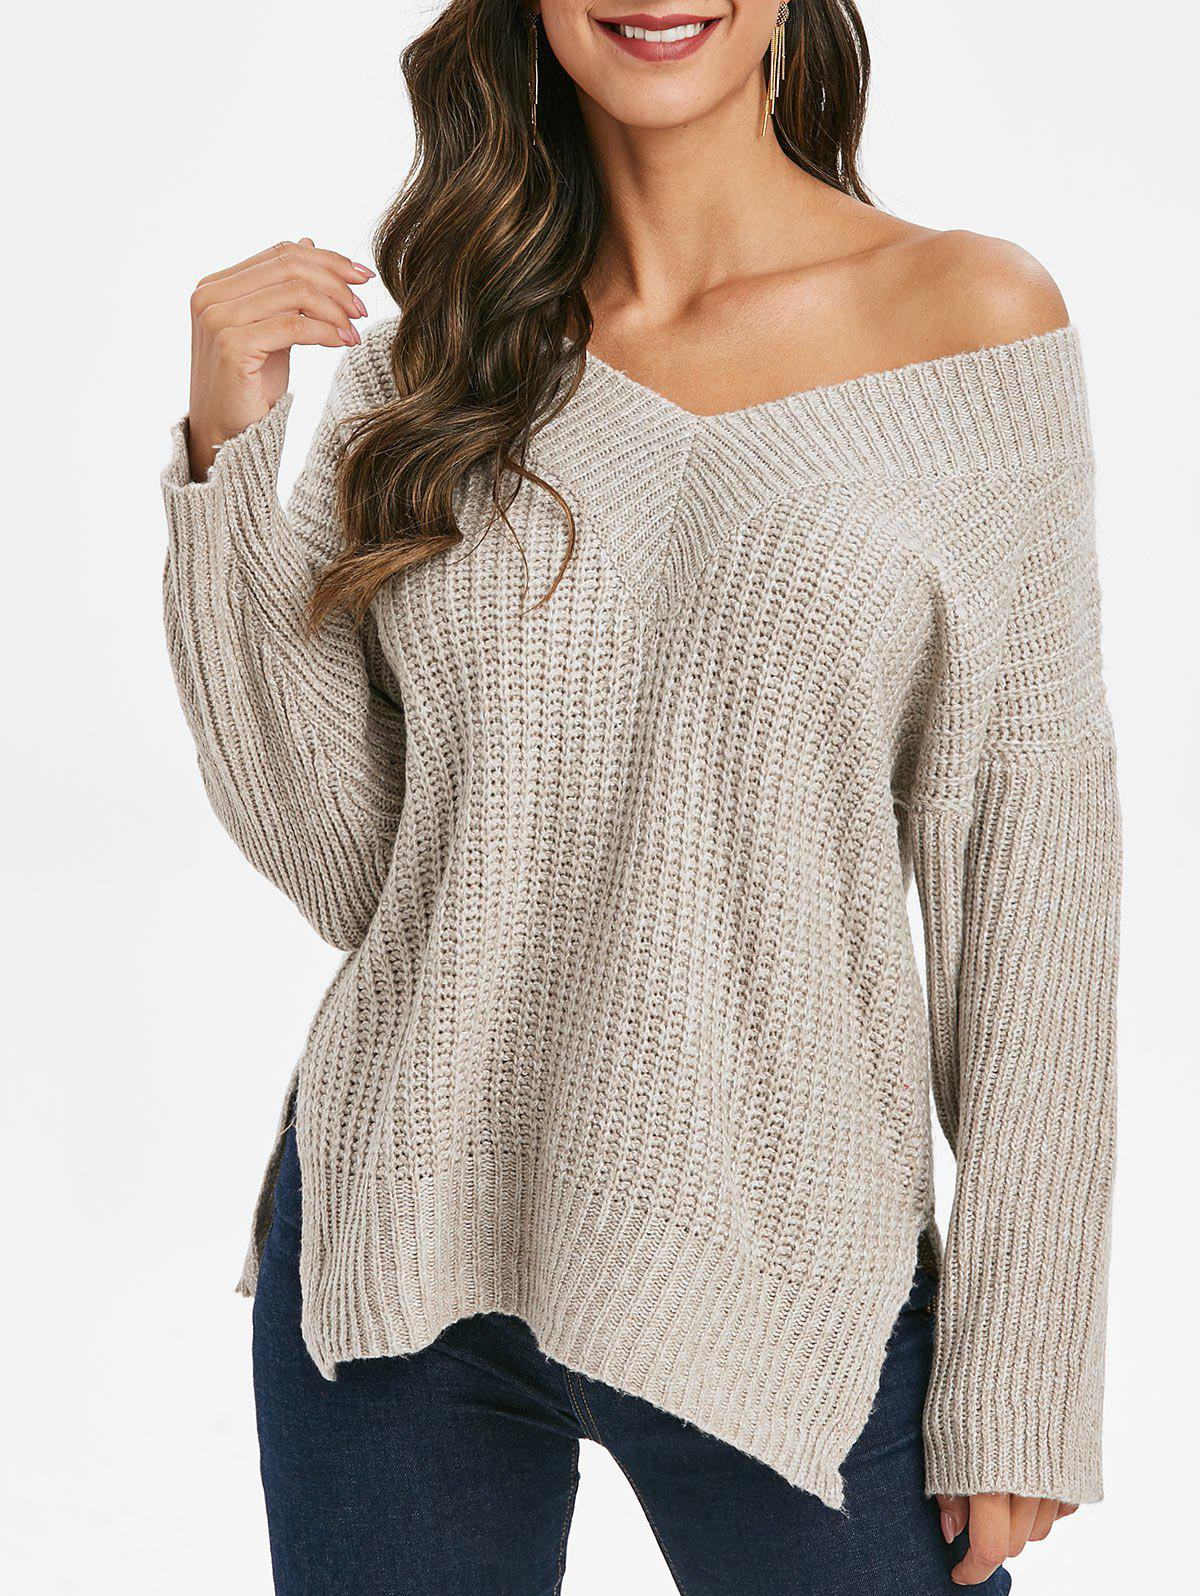 Skew Neck Drop Shoulder Slit Sweater - LIGHT GRAY S